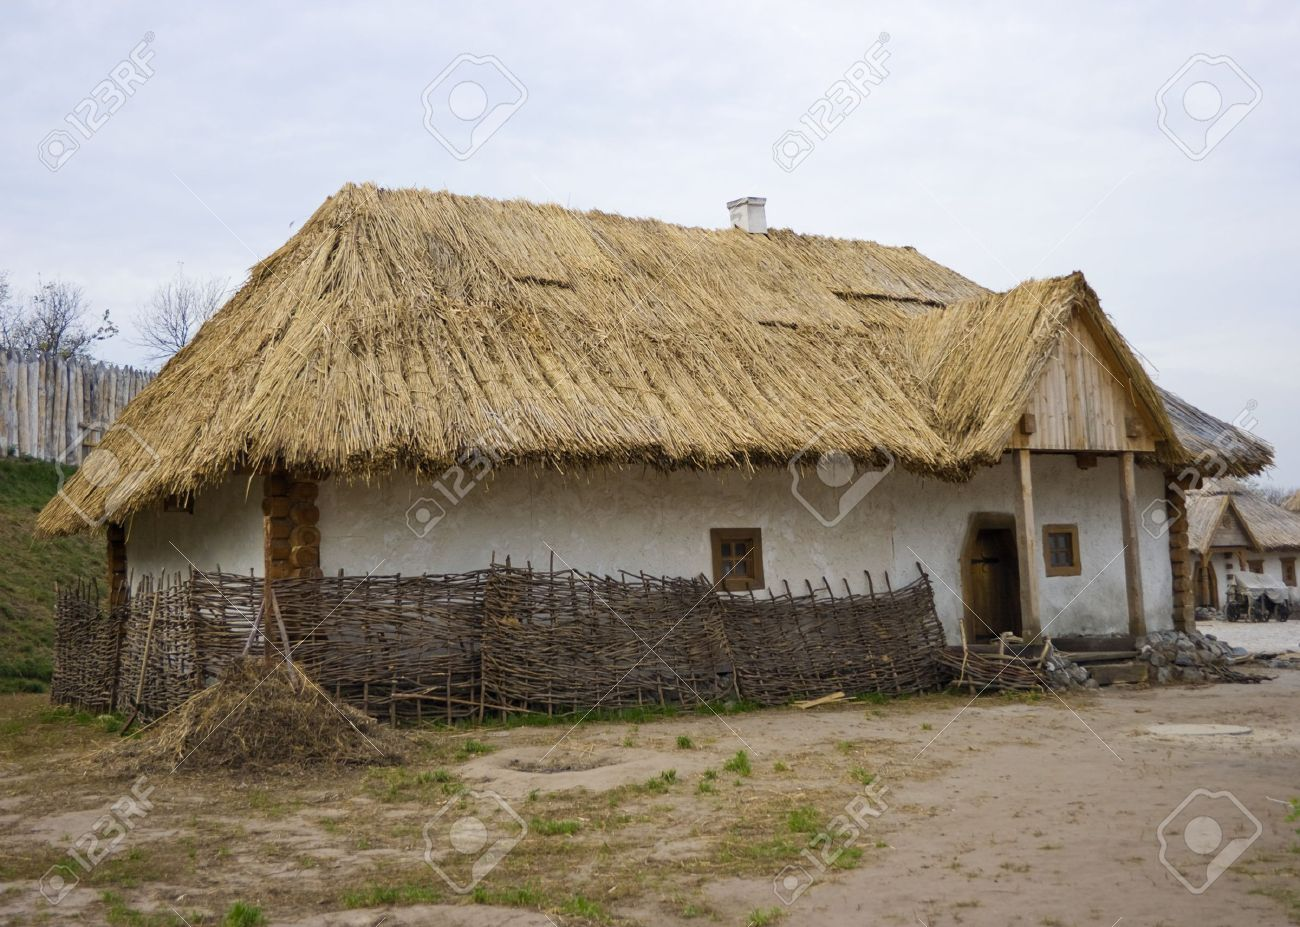 Lovely Old Traditional Ukrainian House With Thatched Roof Stock Photo   1886700